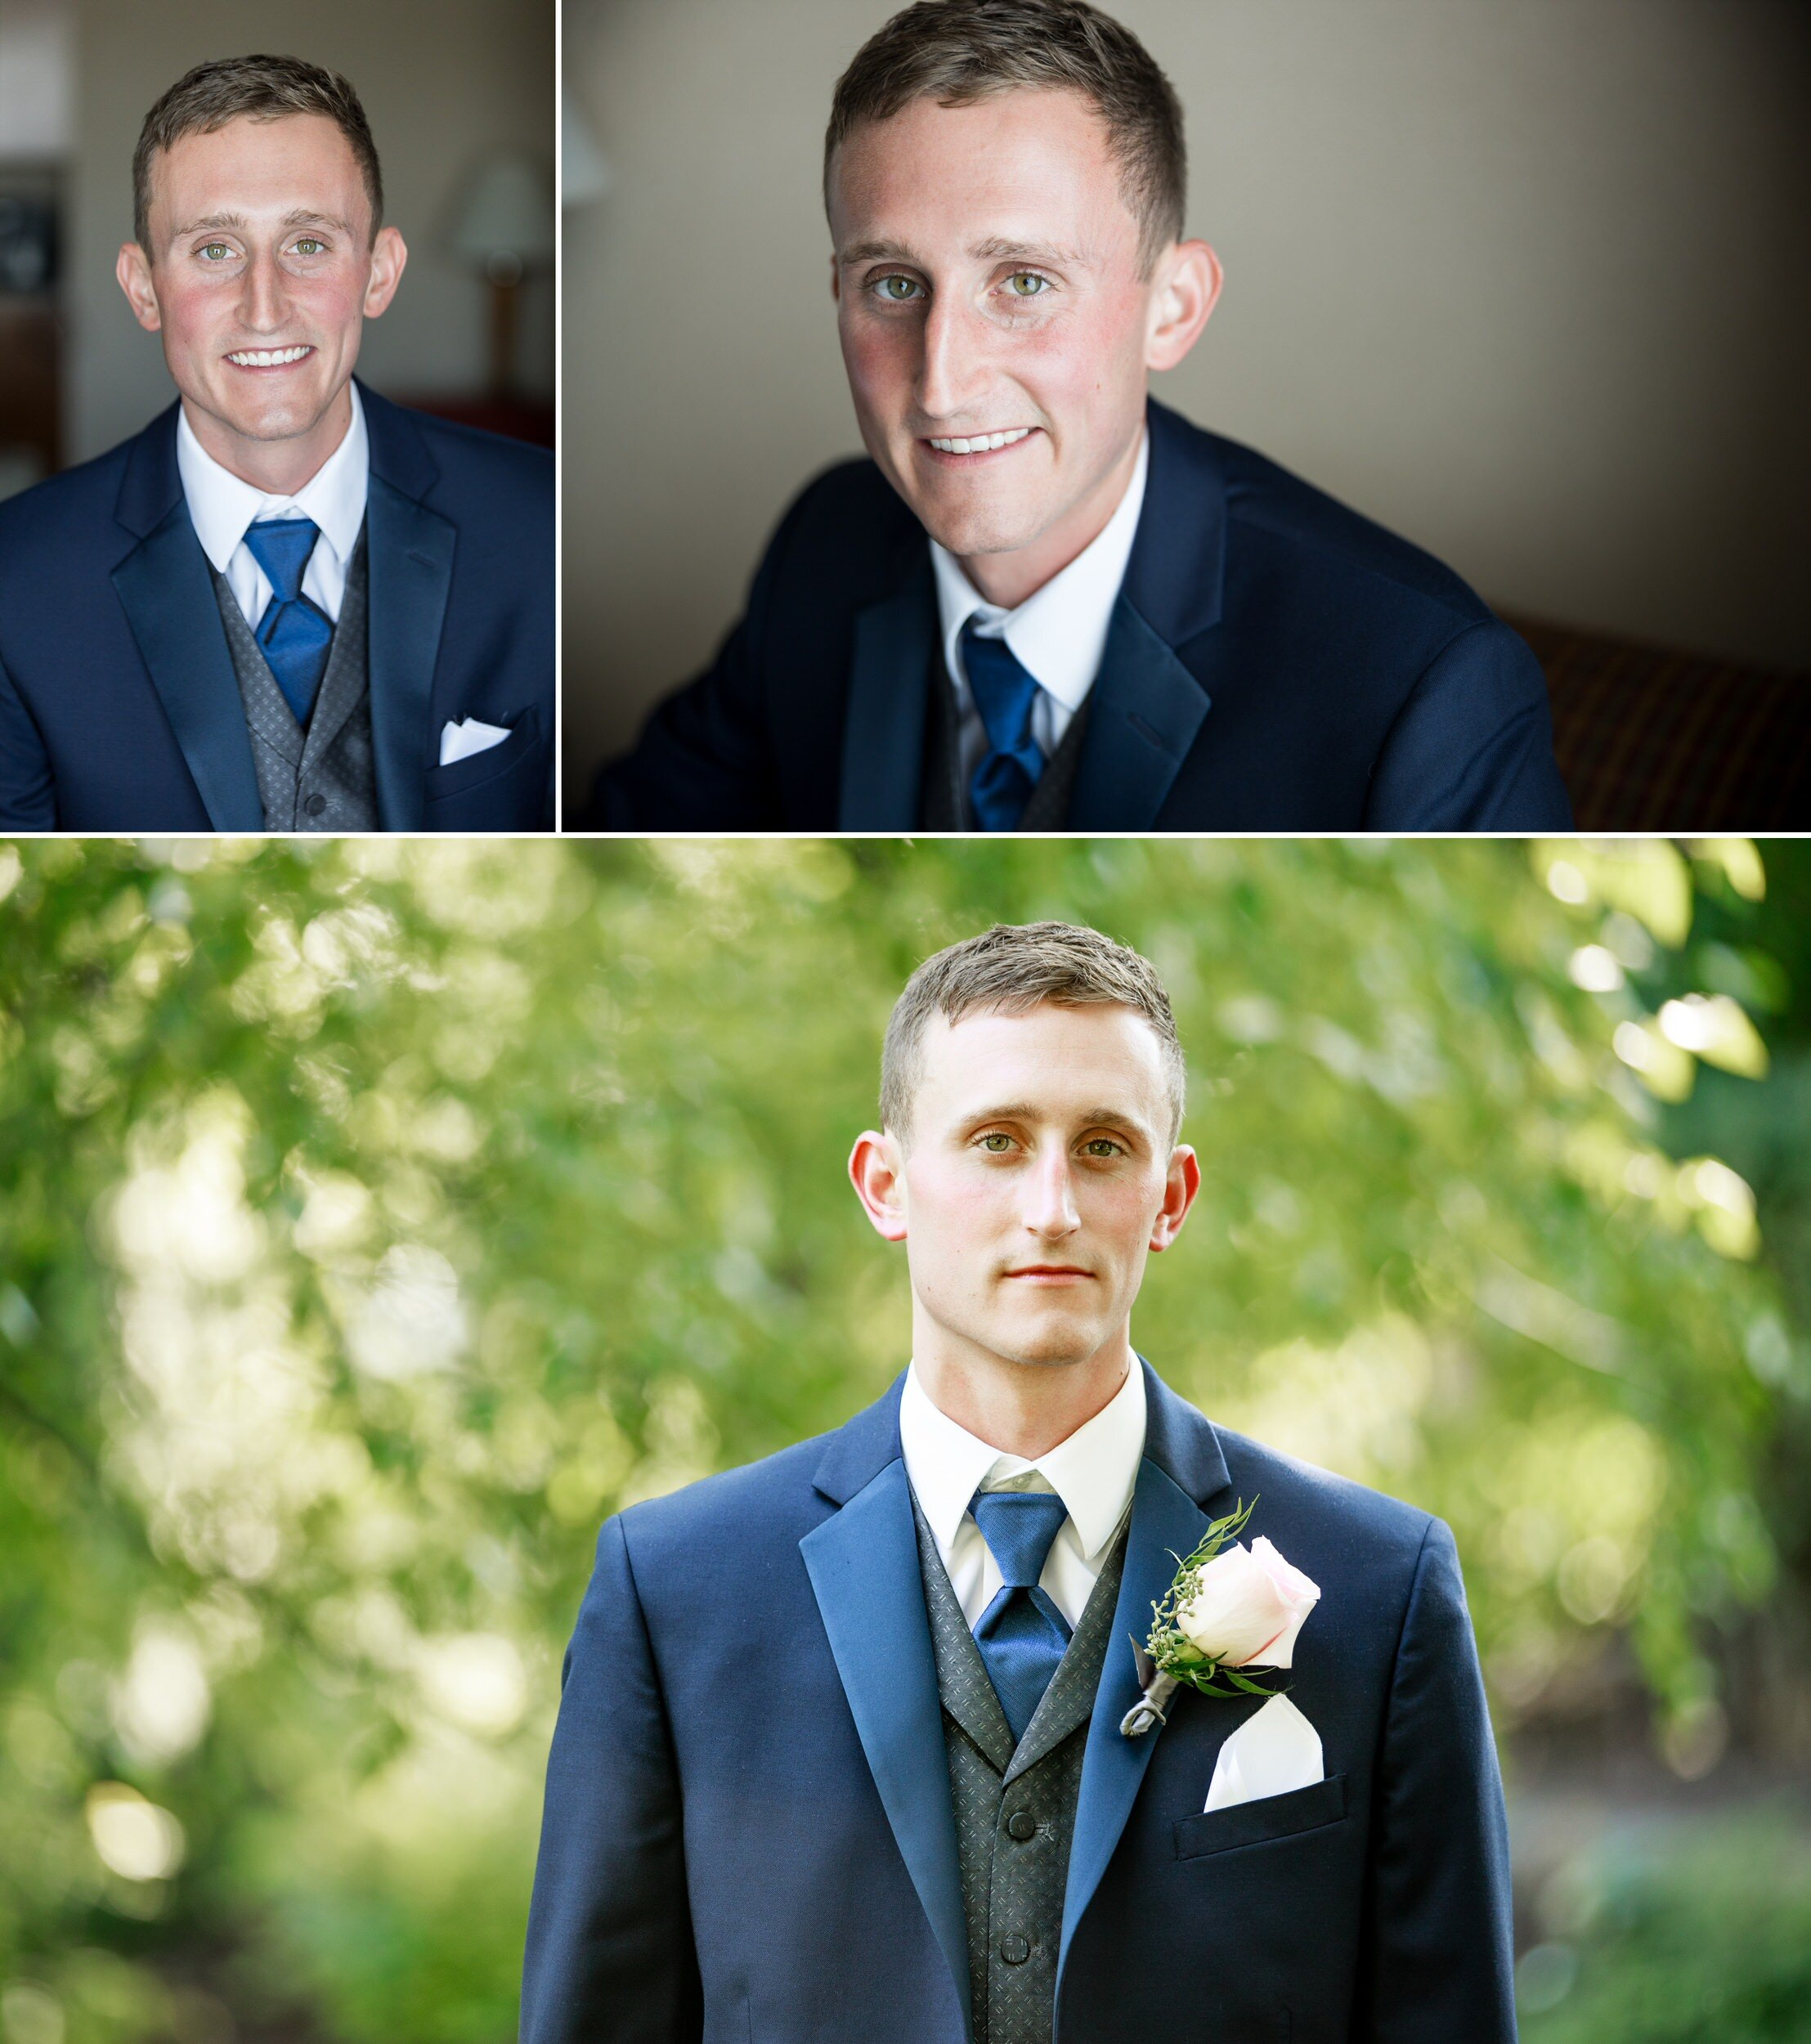 Portraits of the groom at Aberdeen Manor.